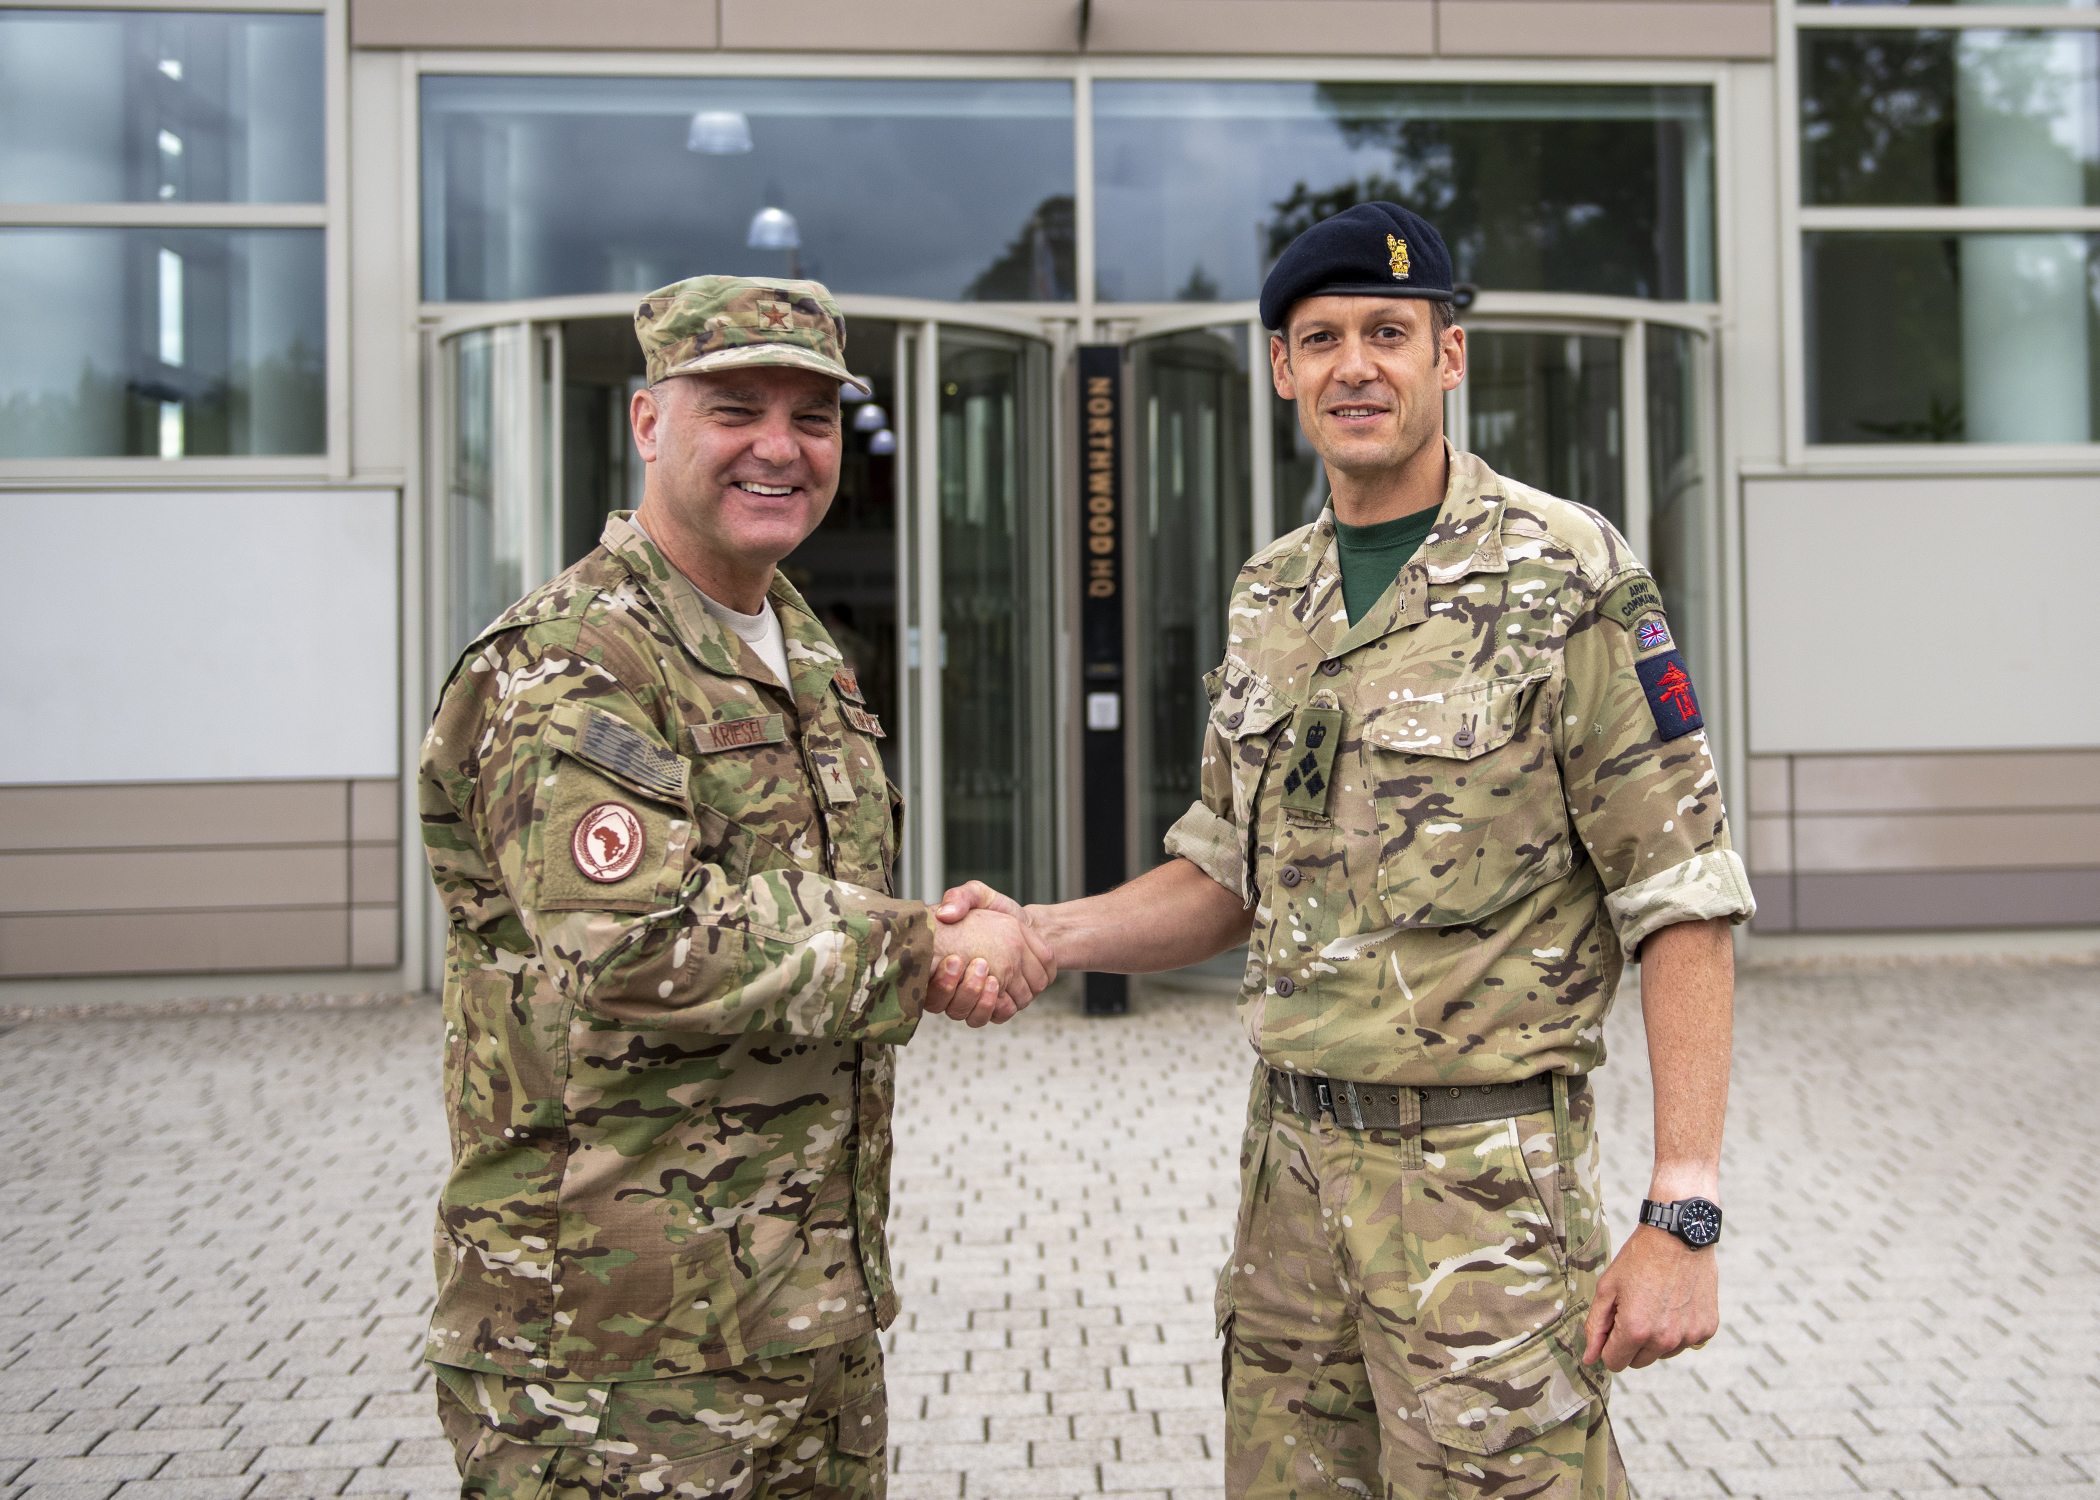 U.S. Air Force Brig. Gen. James R. Kriesel, deputy commanding general of Combined Joint Task Force-Horn of Africa, left, shake hands with Brig. John Ridge, chief of joint force operations at Permanent Joint Headquarters (PJHQ), at PJHQ, June 5, 2019. Kriesel visited the U.K. to build relations with leaders across the Ministry of Defense and familiarize himself with the partner nation's information exchange policies, which is mission essential in support of national objectives. (U.S. Air Force photo by Tech. Sgt. Shawn Nickel)